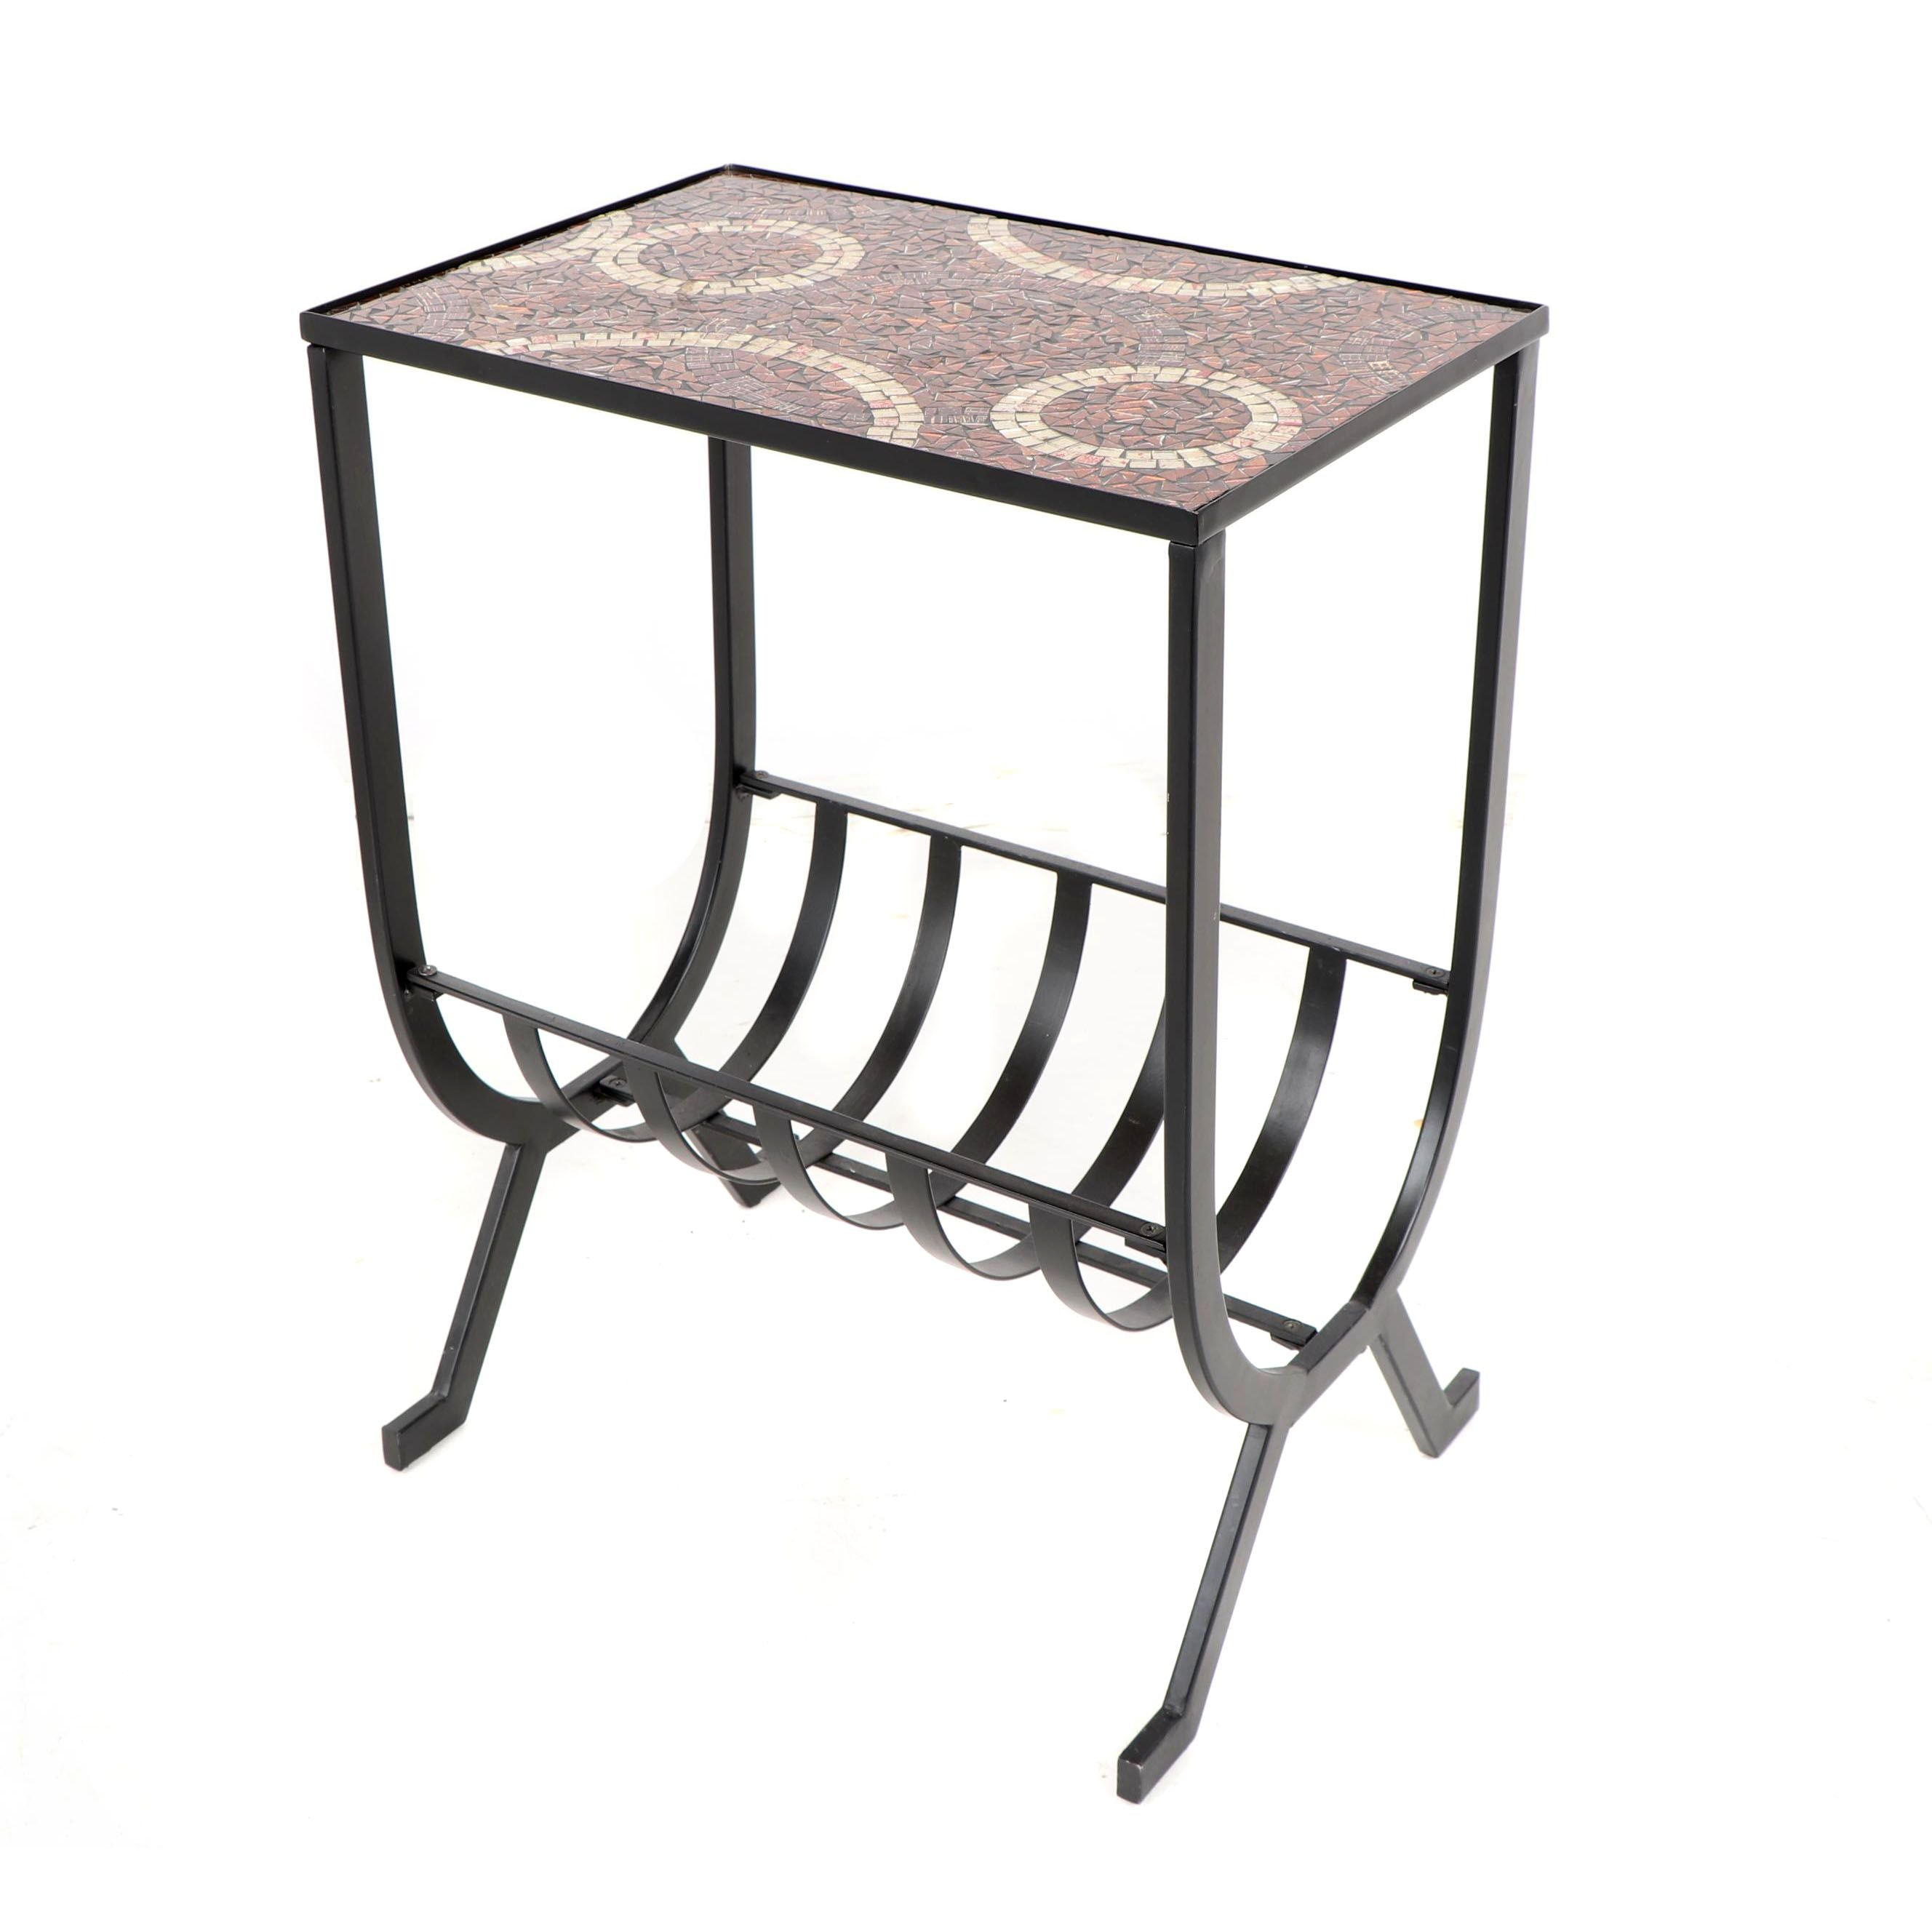 Contemporary Glass Mosaic and Metal Side Table